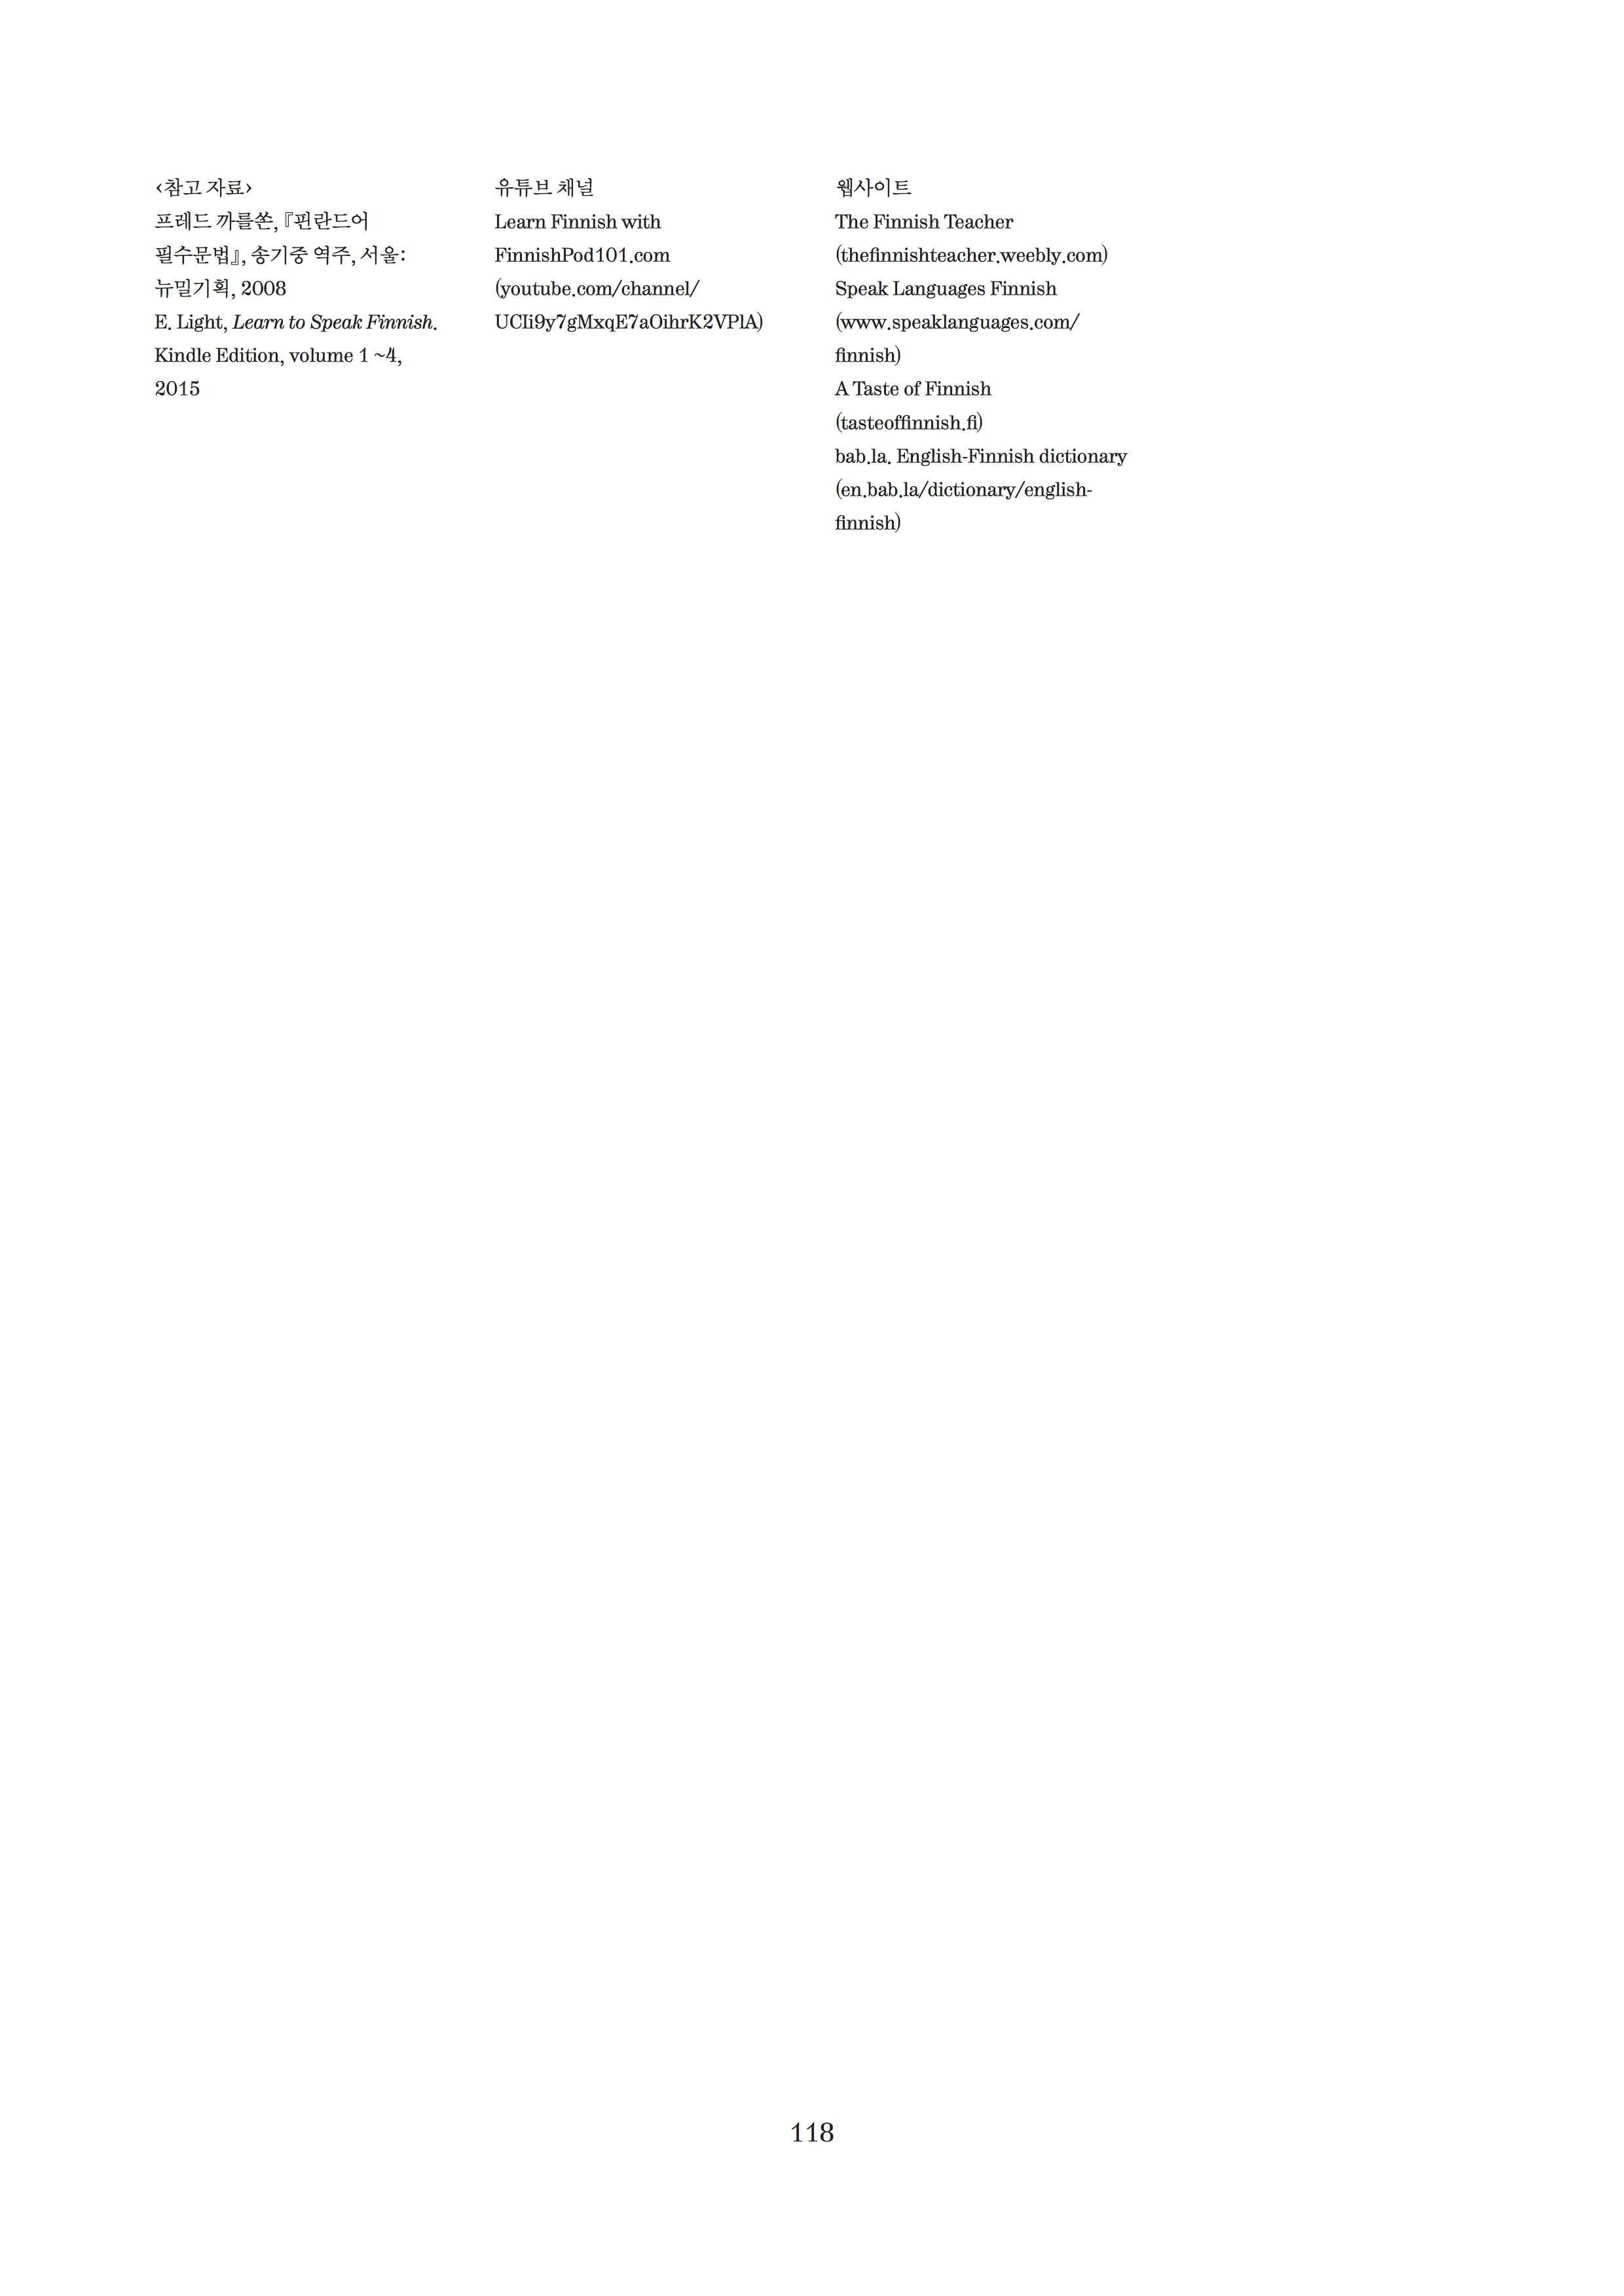 AVP_document_24-display_6